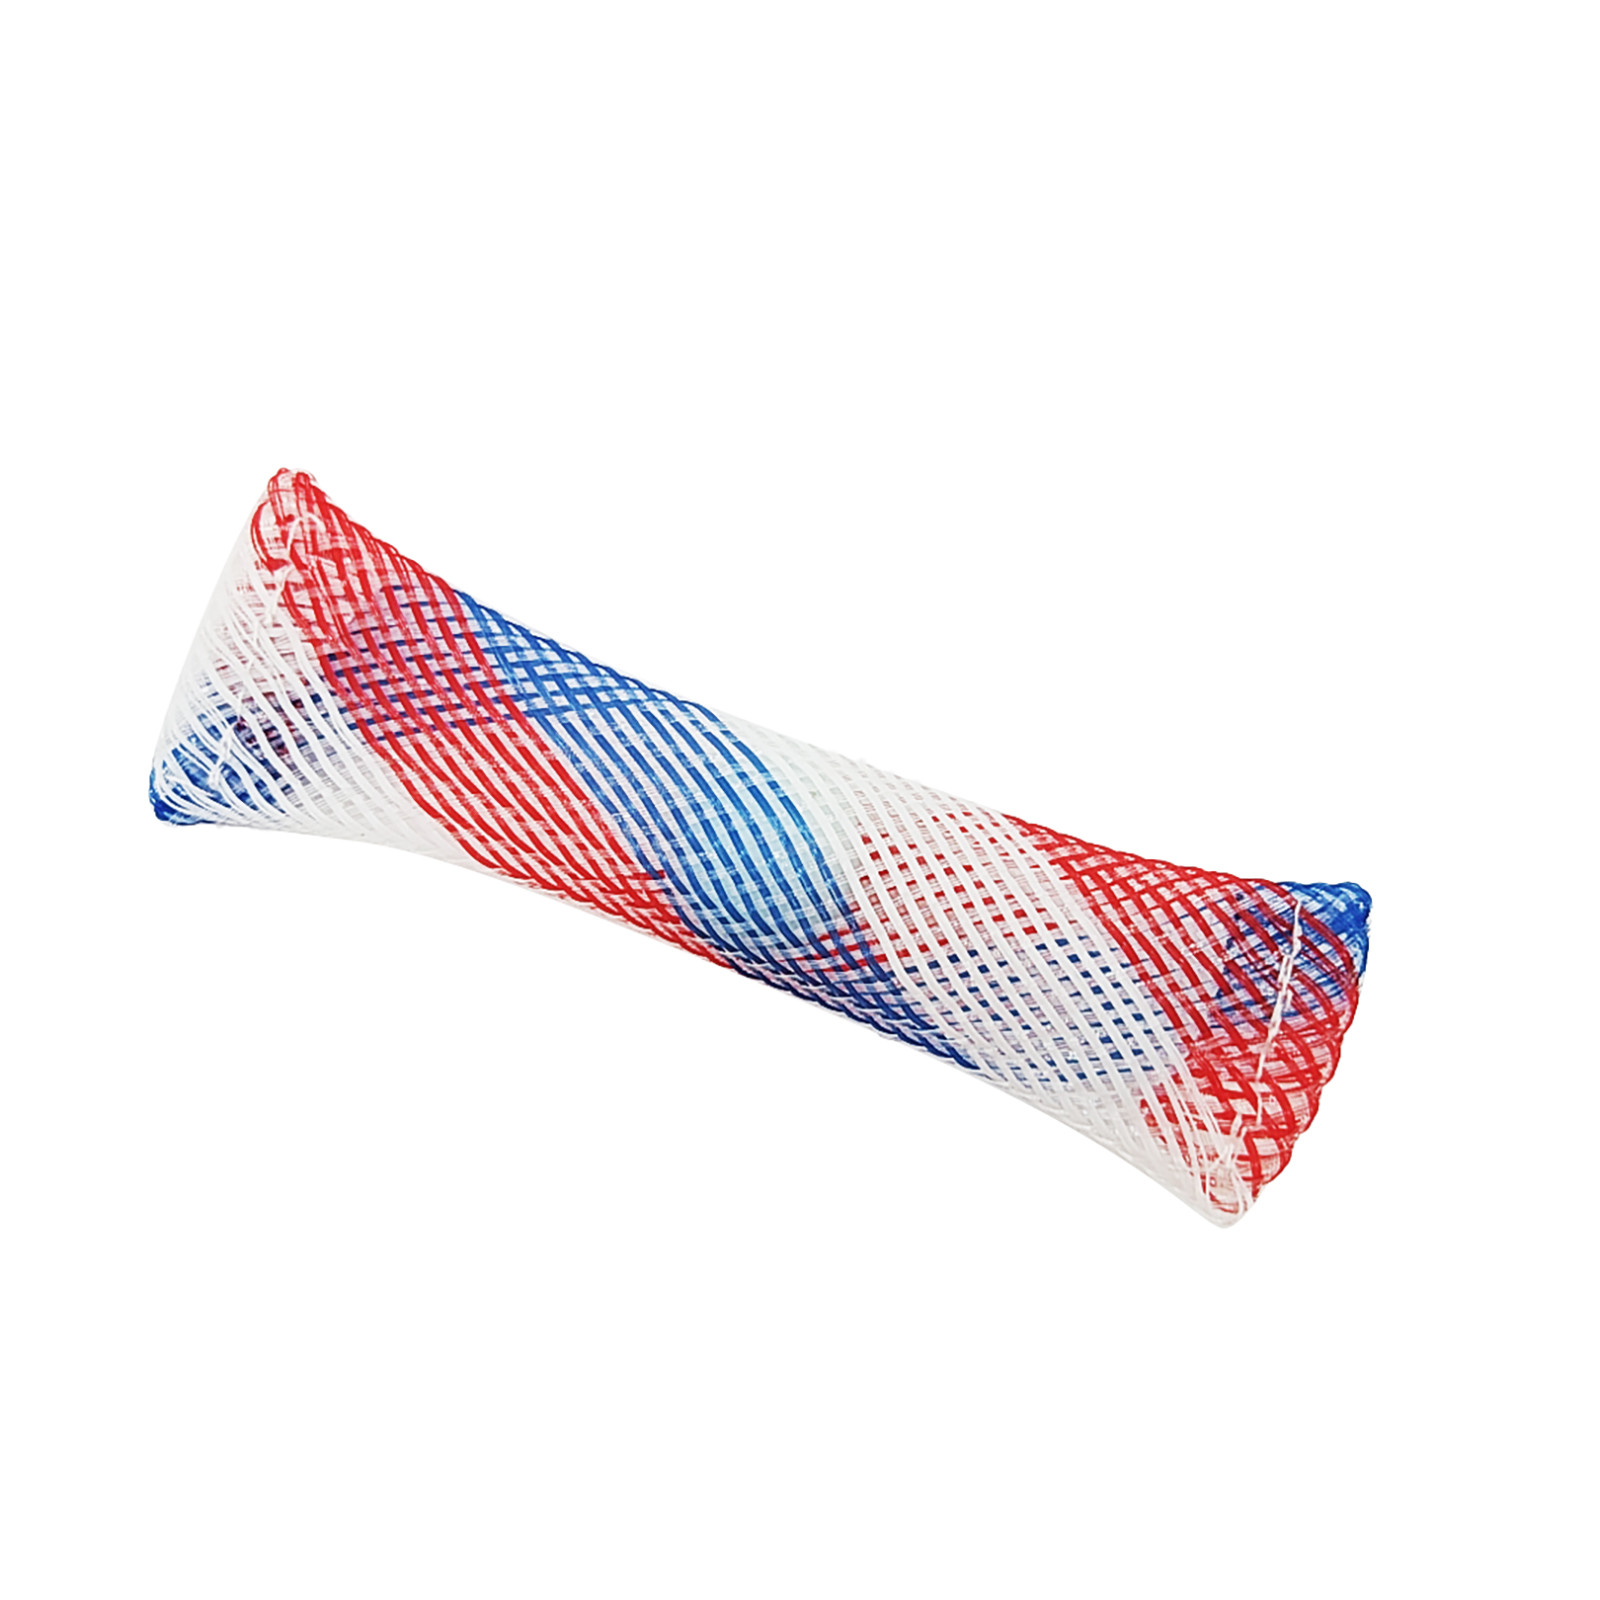 Fidgets Toy Net-Tube Glass-Ball Marble Mesh Decompression Hand-Sensory Anti-Stress Relief img2